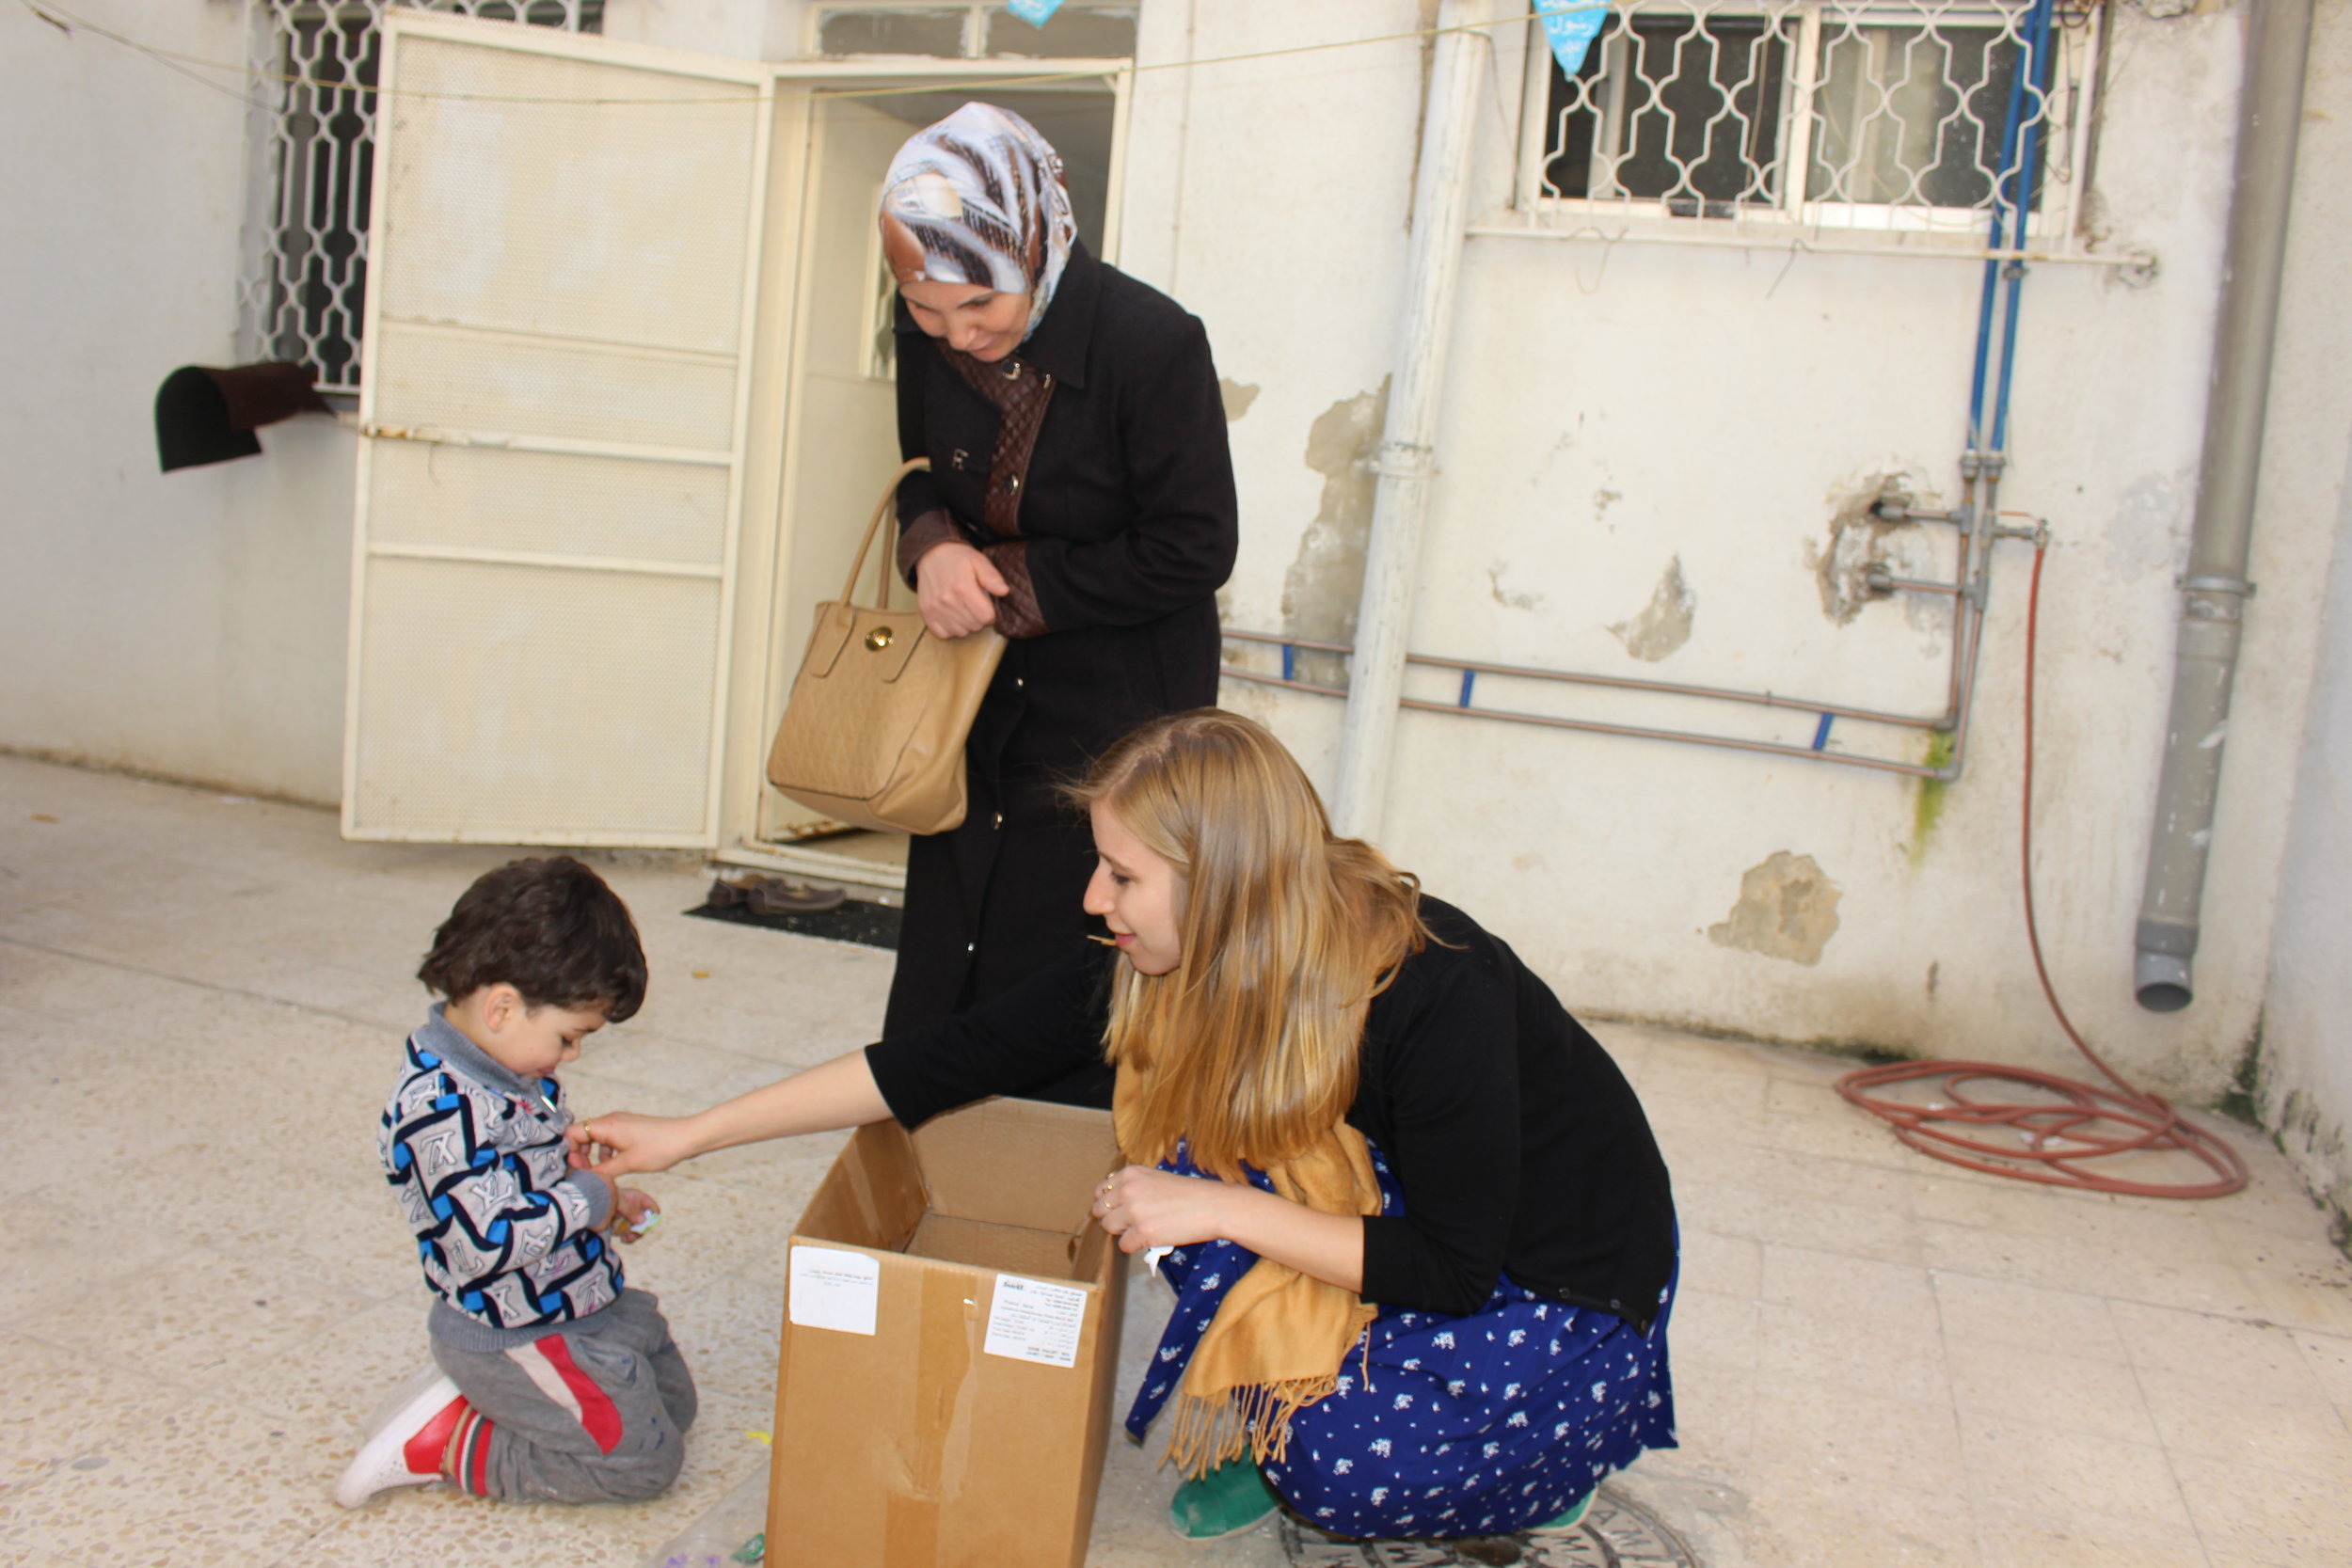 CRITICAL NEEDS DISTRIBUTIONS - The Azraq Center is addressing the massive humanitarian crisis among Syrian refugees living in Jordan by regularly providing basic supplies to support families in need. Our efforts are successful because of our strong partnerships with local charities and vendors.